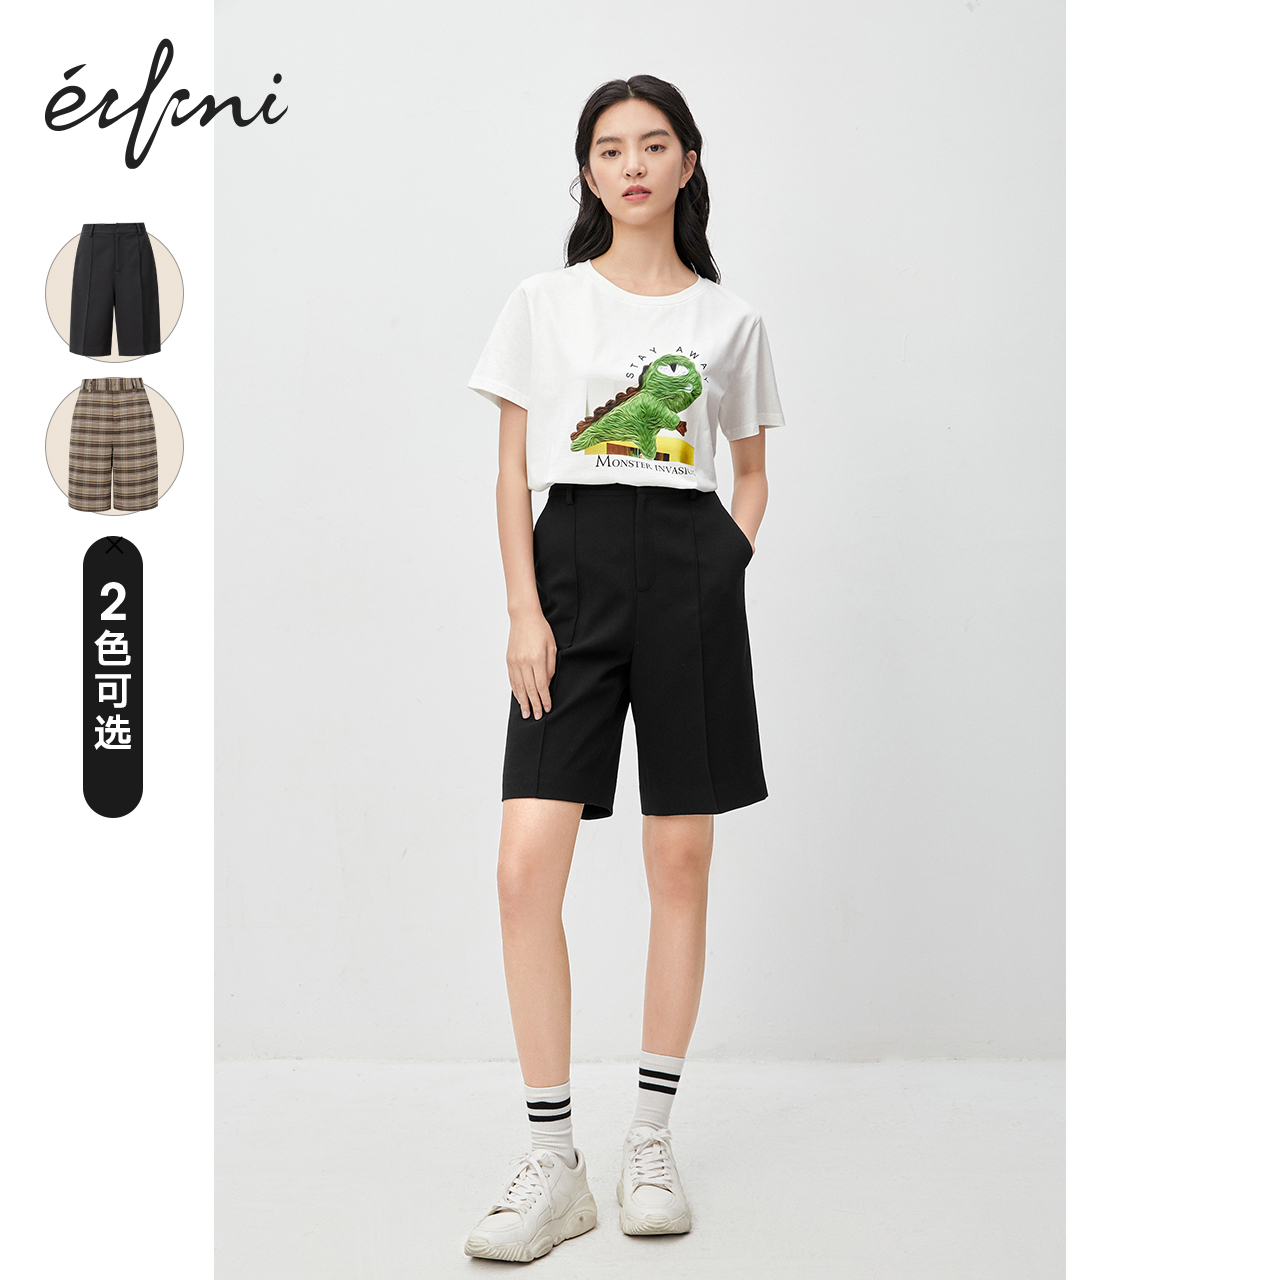 Evely shorts women's 2020 new autumn dress Korean black pants, straight tube, high waist and thin casual pants